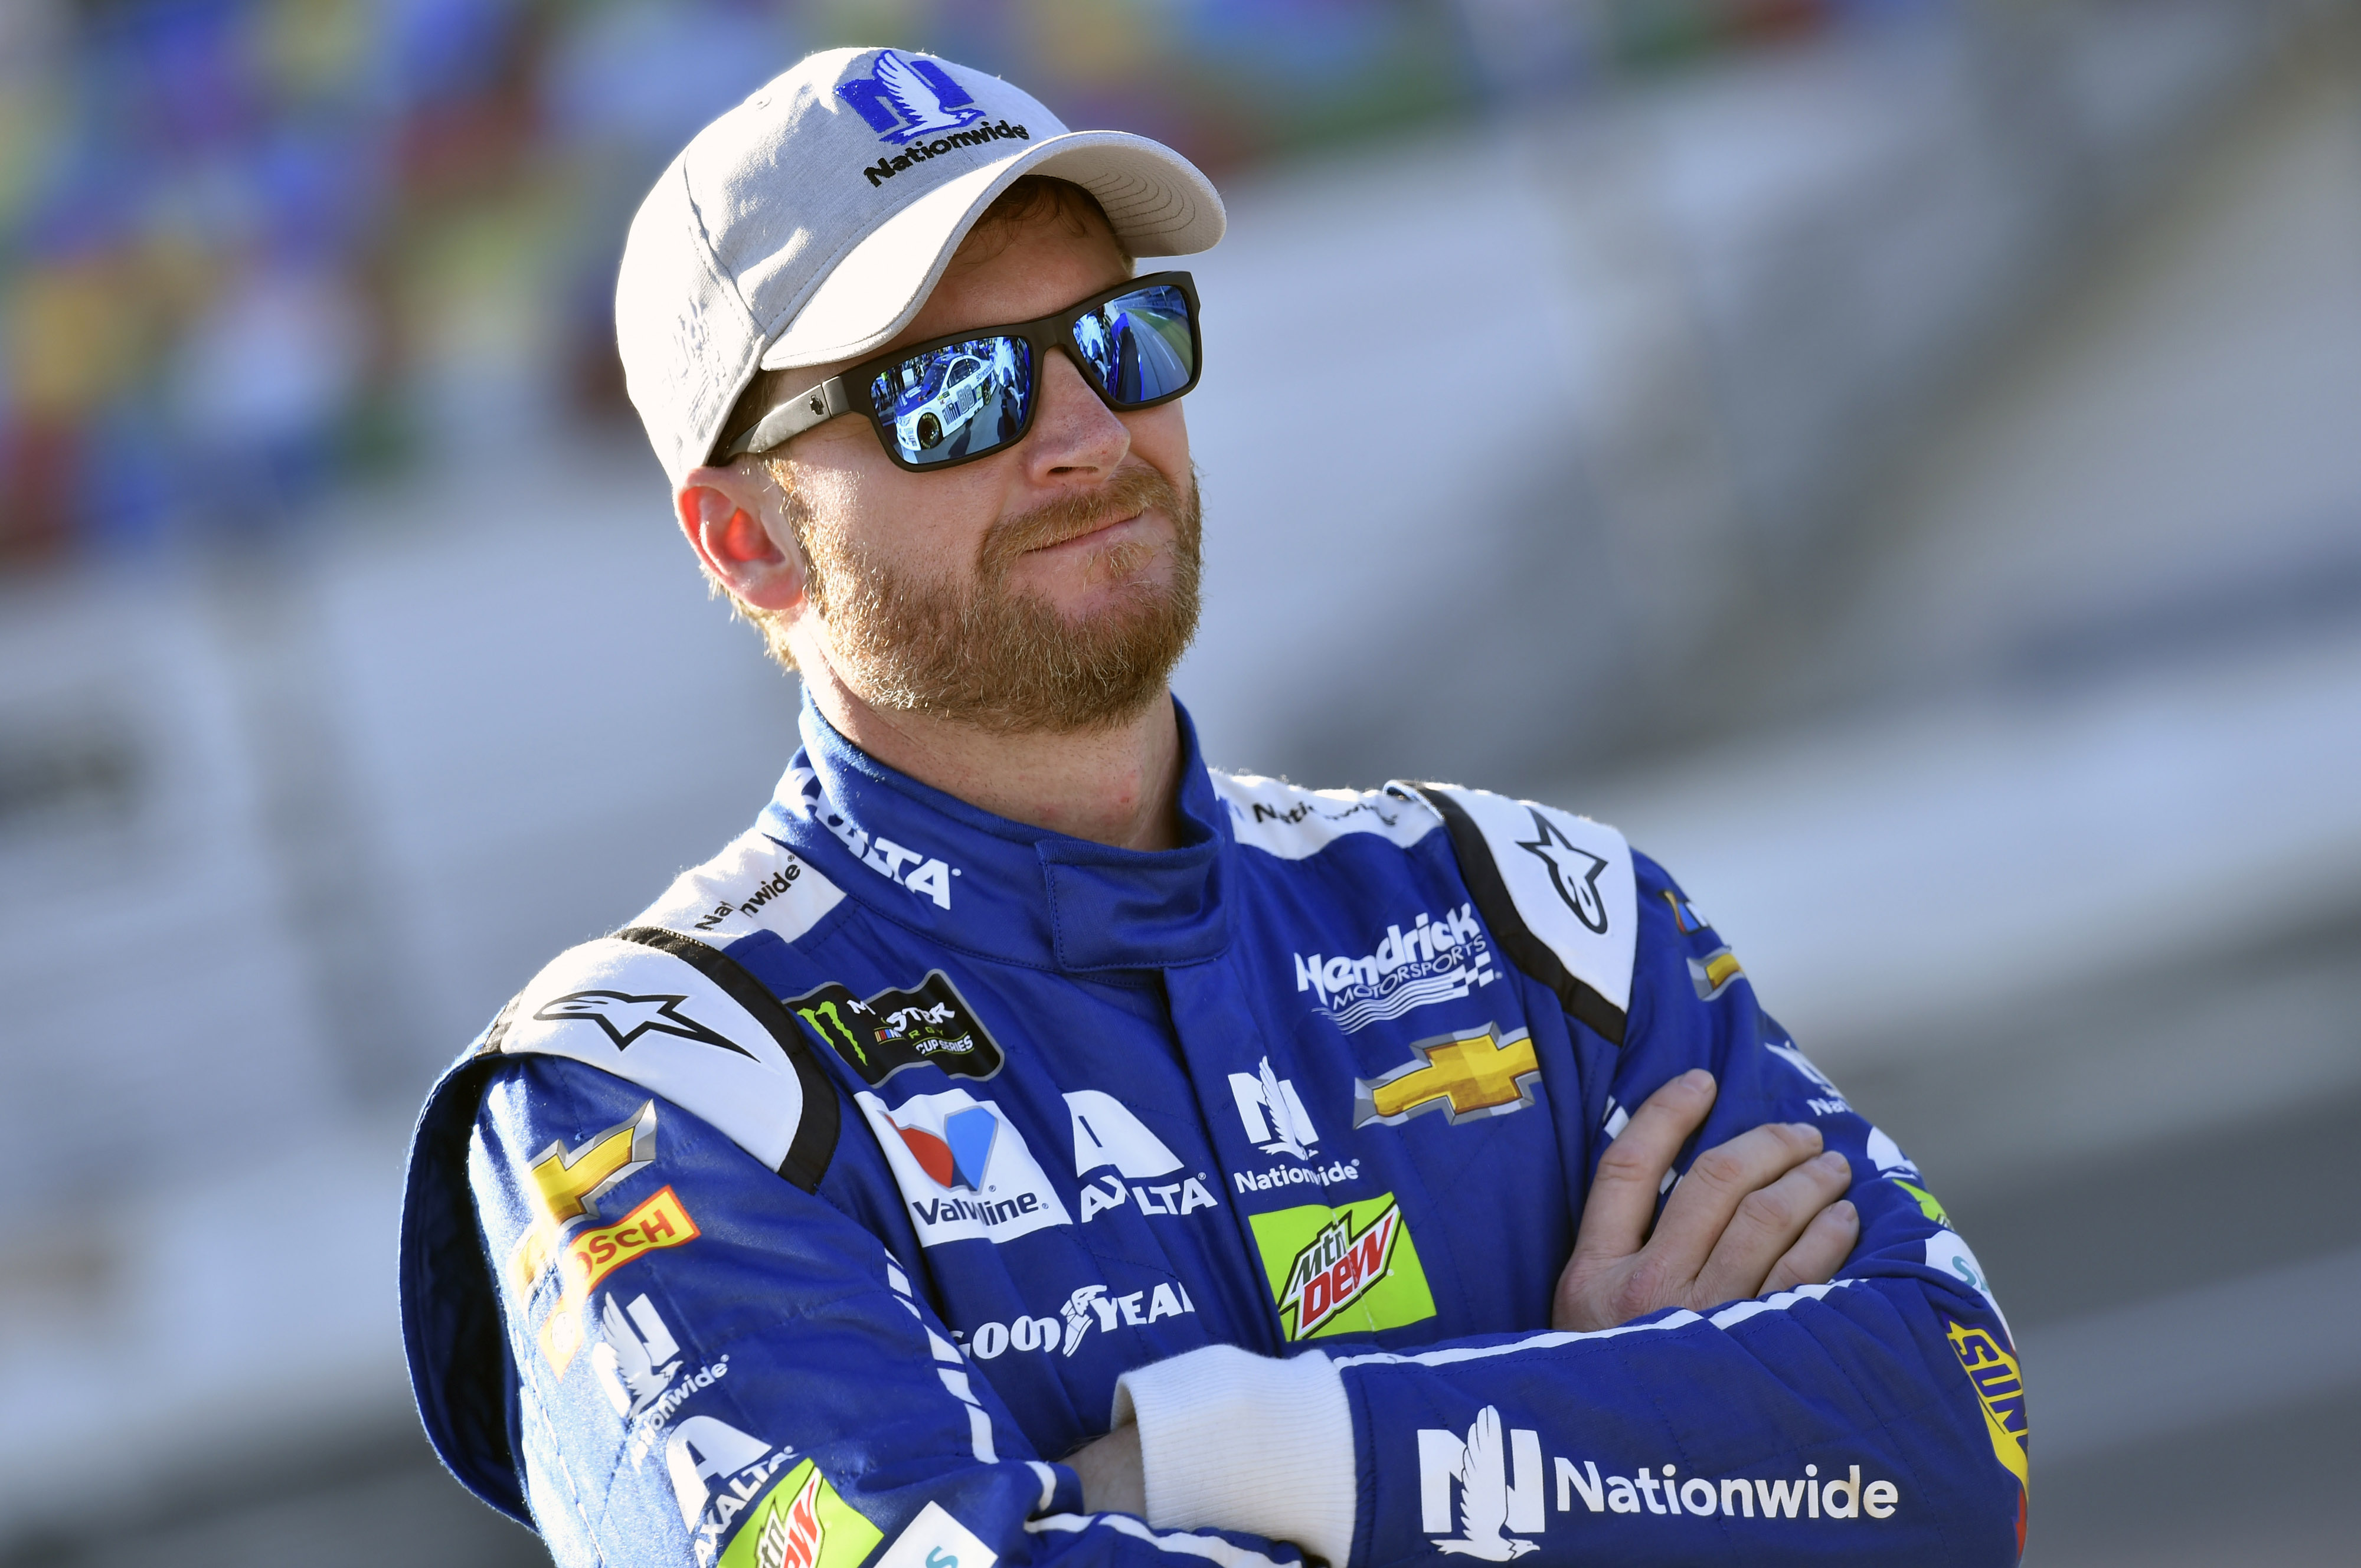 2017 NASCAR Cup - Daytona 500 Daytona International Speedway, Daytona Beach, FL USA Sunday 19 February 2017 Dale Earnhardt Jr World Copyright: Nigel Kinrade/LAT Images  ref: Digital Image 17DAY1nk05288